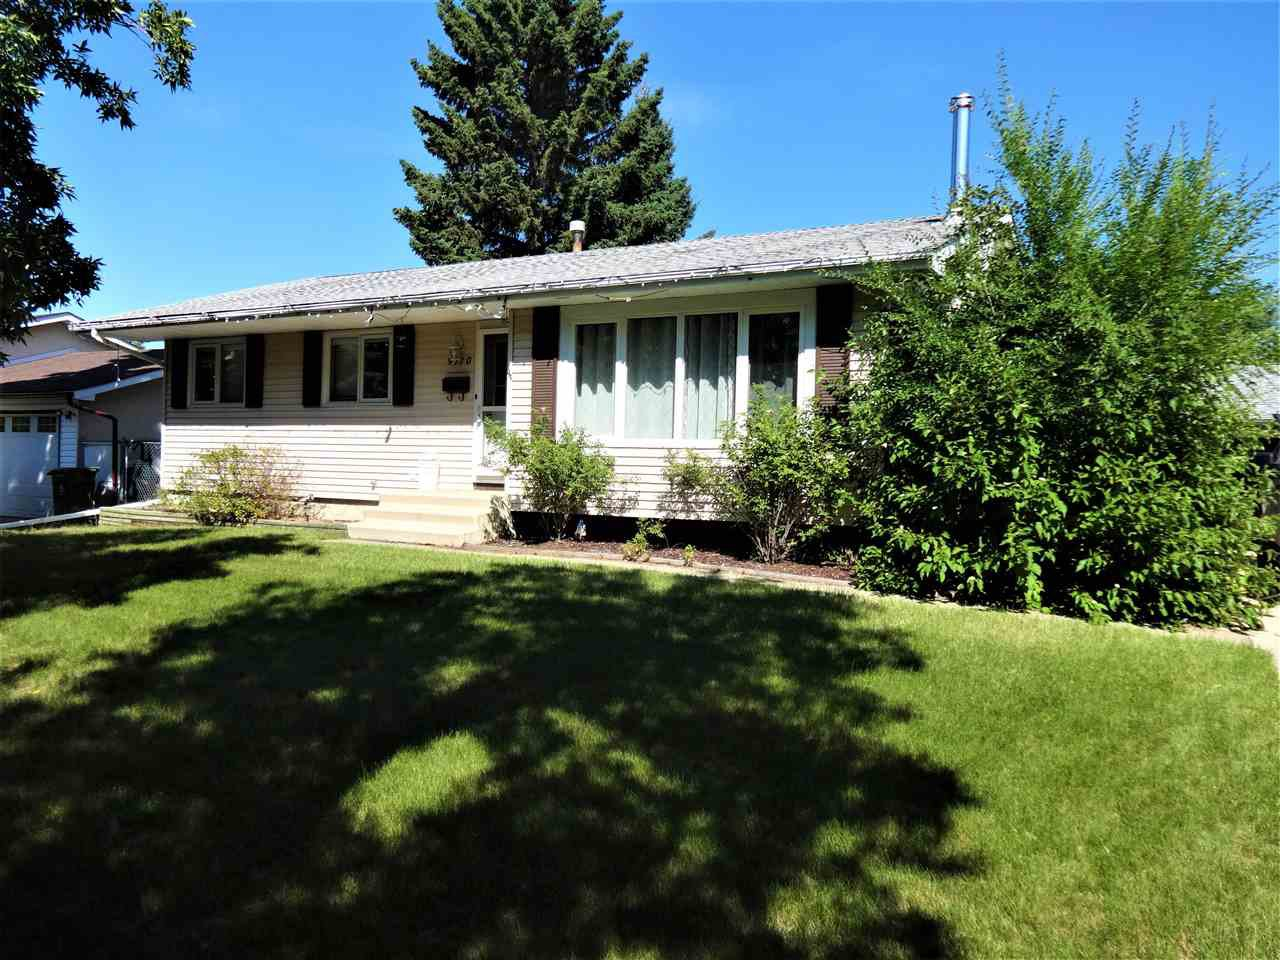 Main Photo: 9110 98 Avenue: Fort Saskatchewan House for sale : MLS®# E4210829